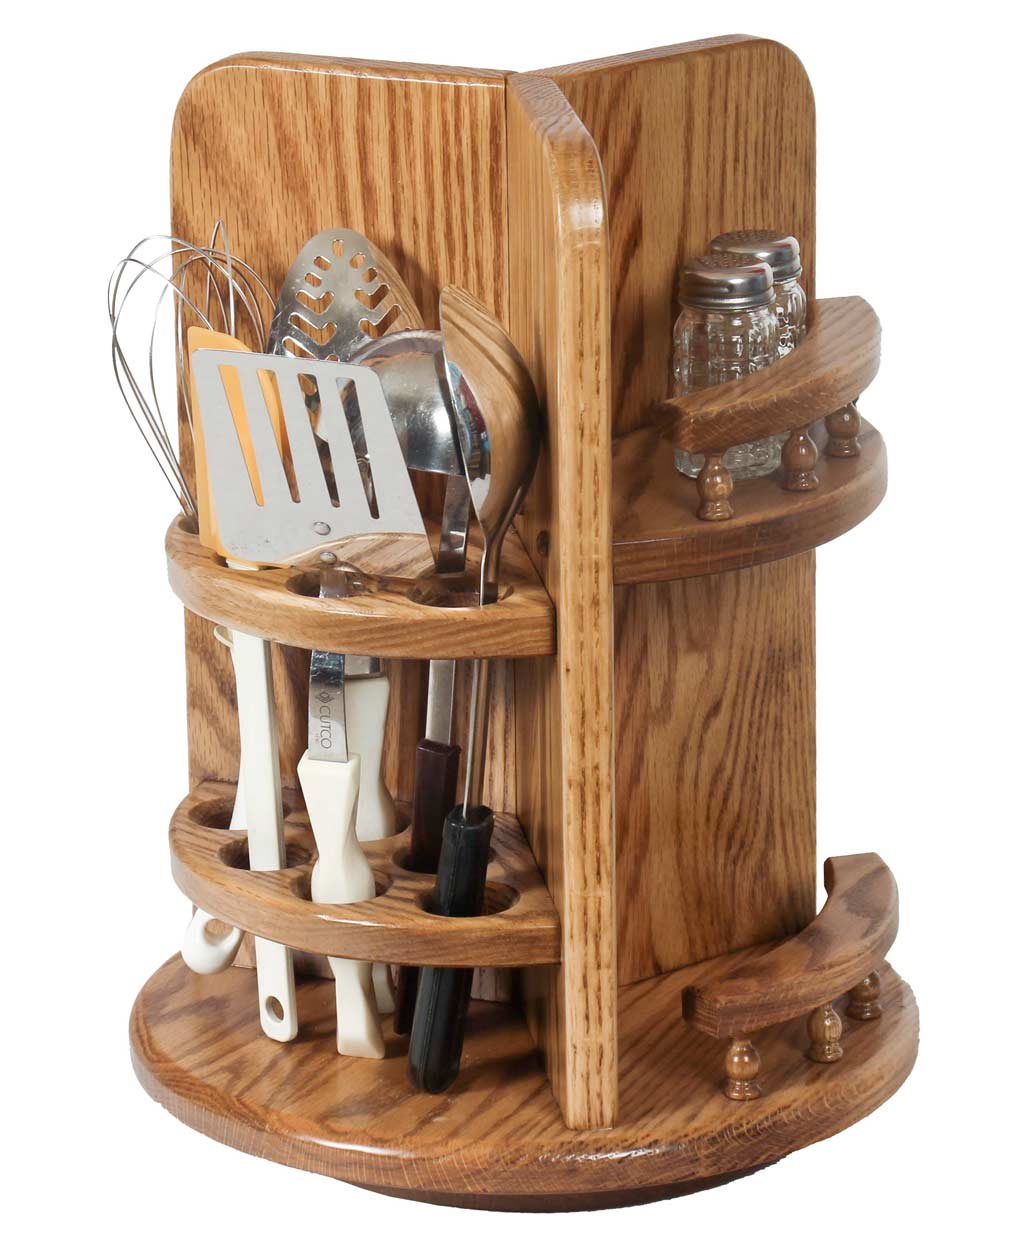 Kitchen Utensil Lazy Susan With Paper Towel Holder And Spice Rack   Oak